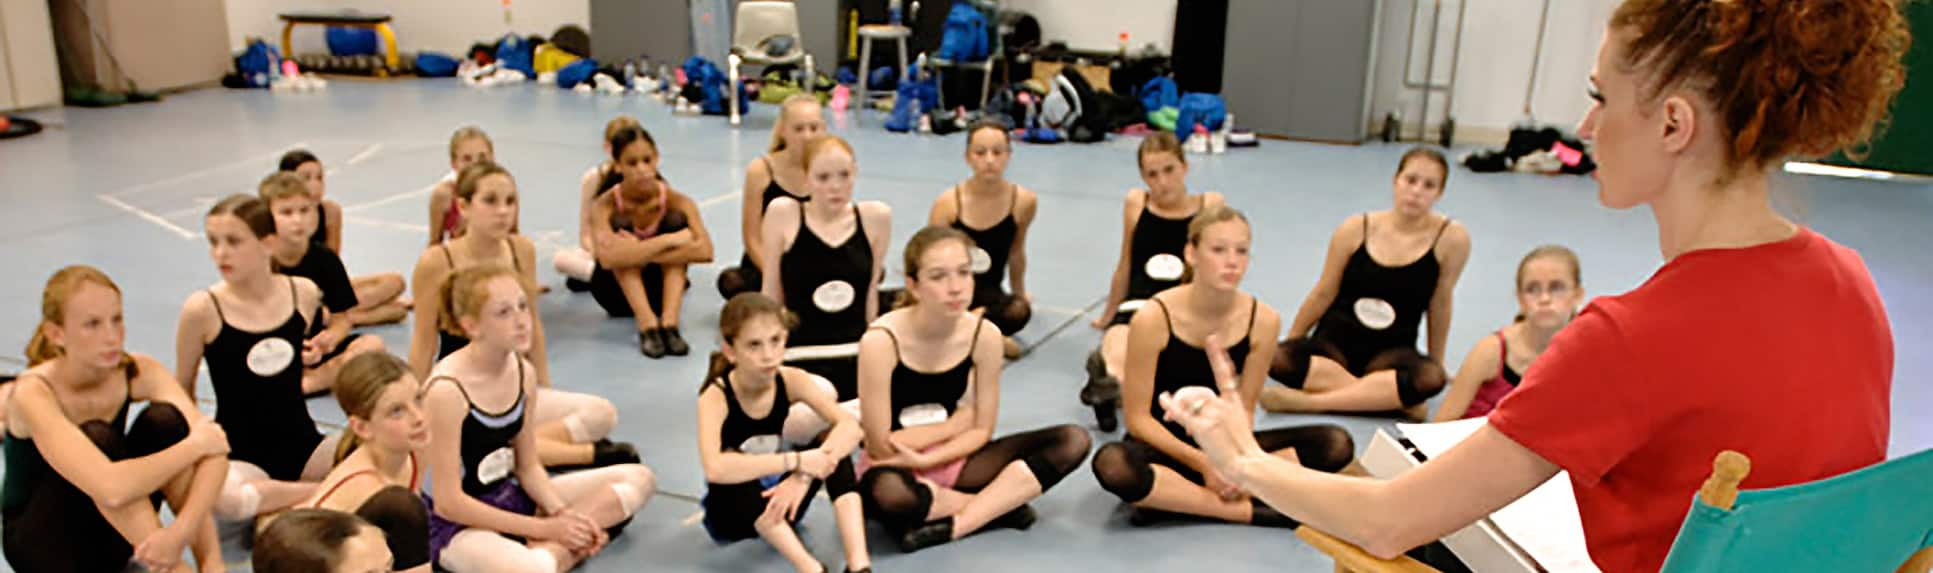 A woman sitting in a directors chair looking at a group of young girls wearing dance clothes and jazz shoes